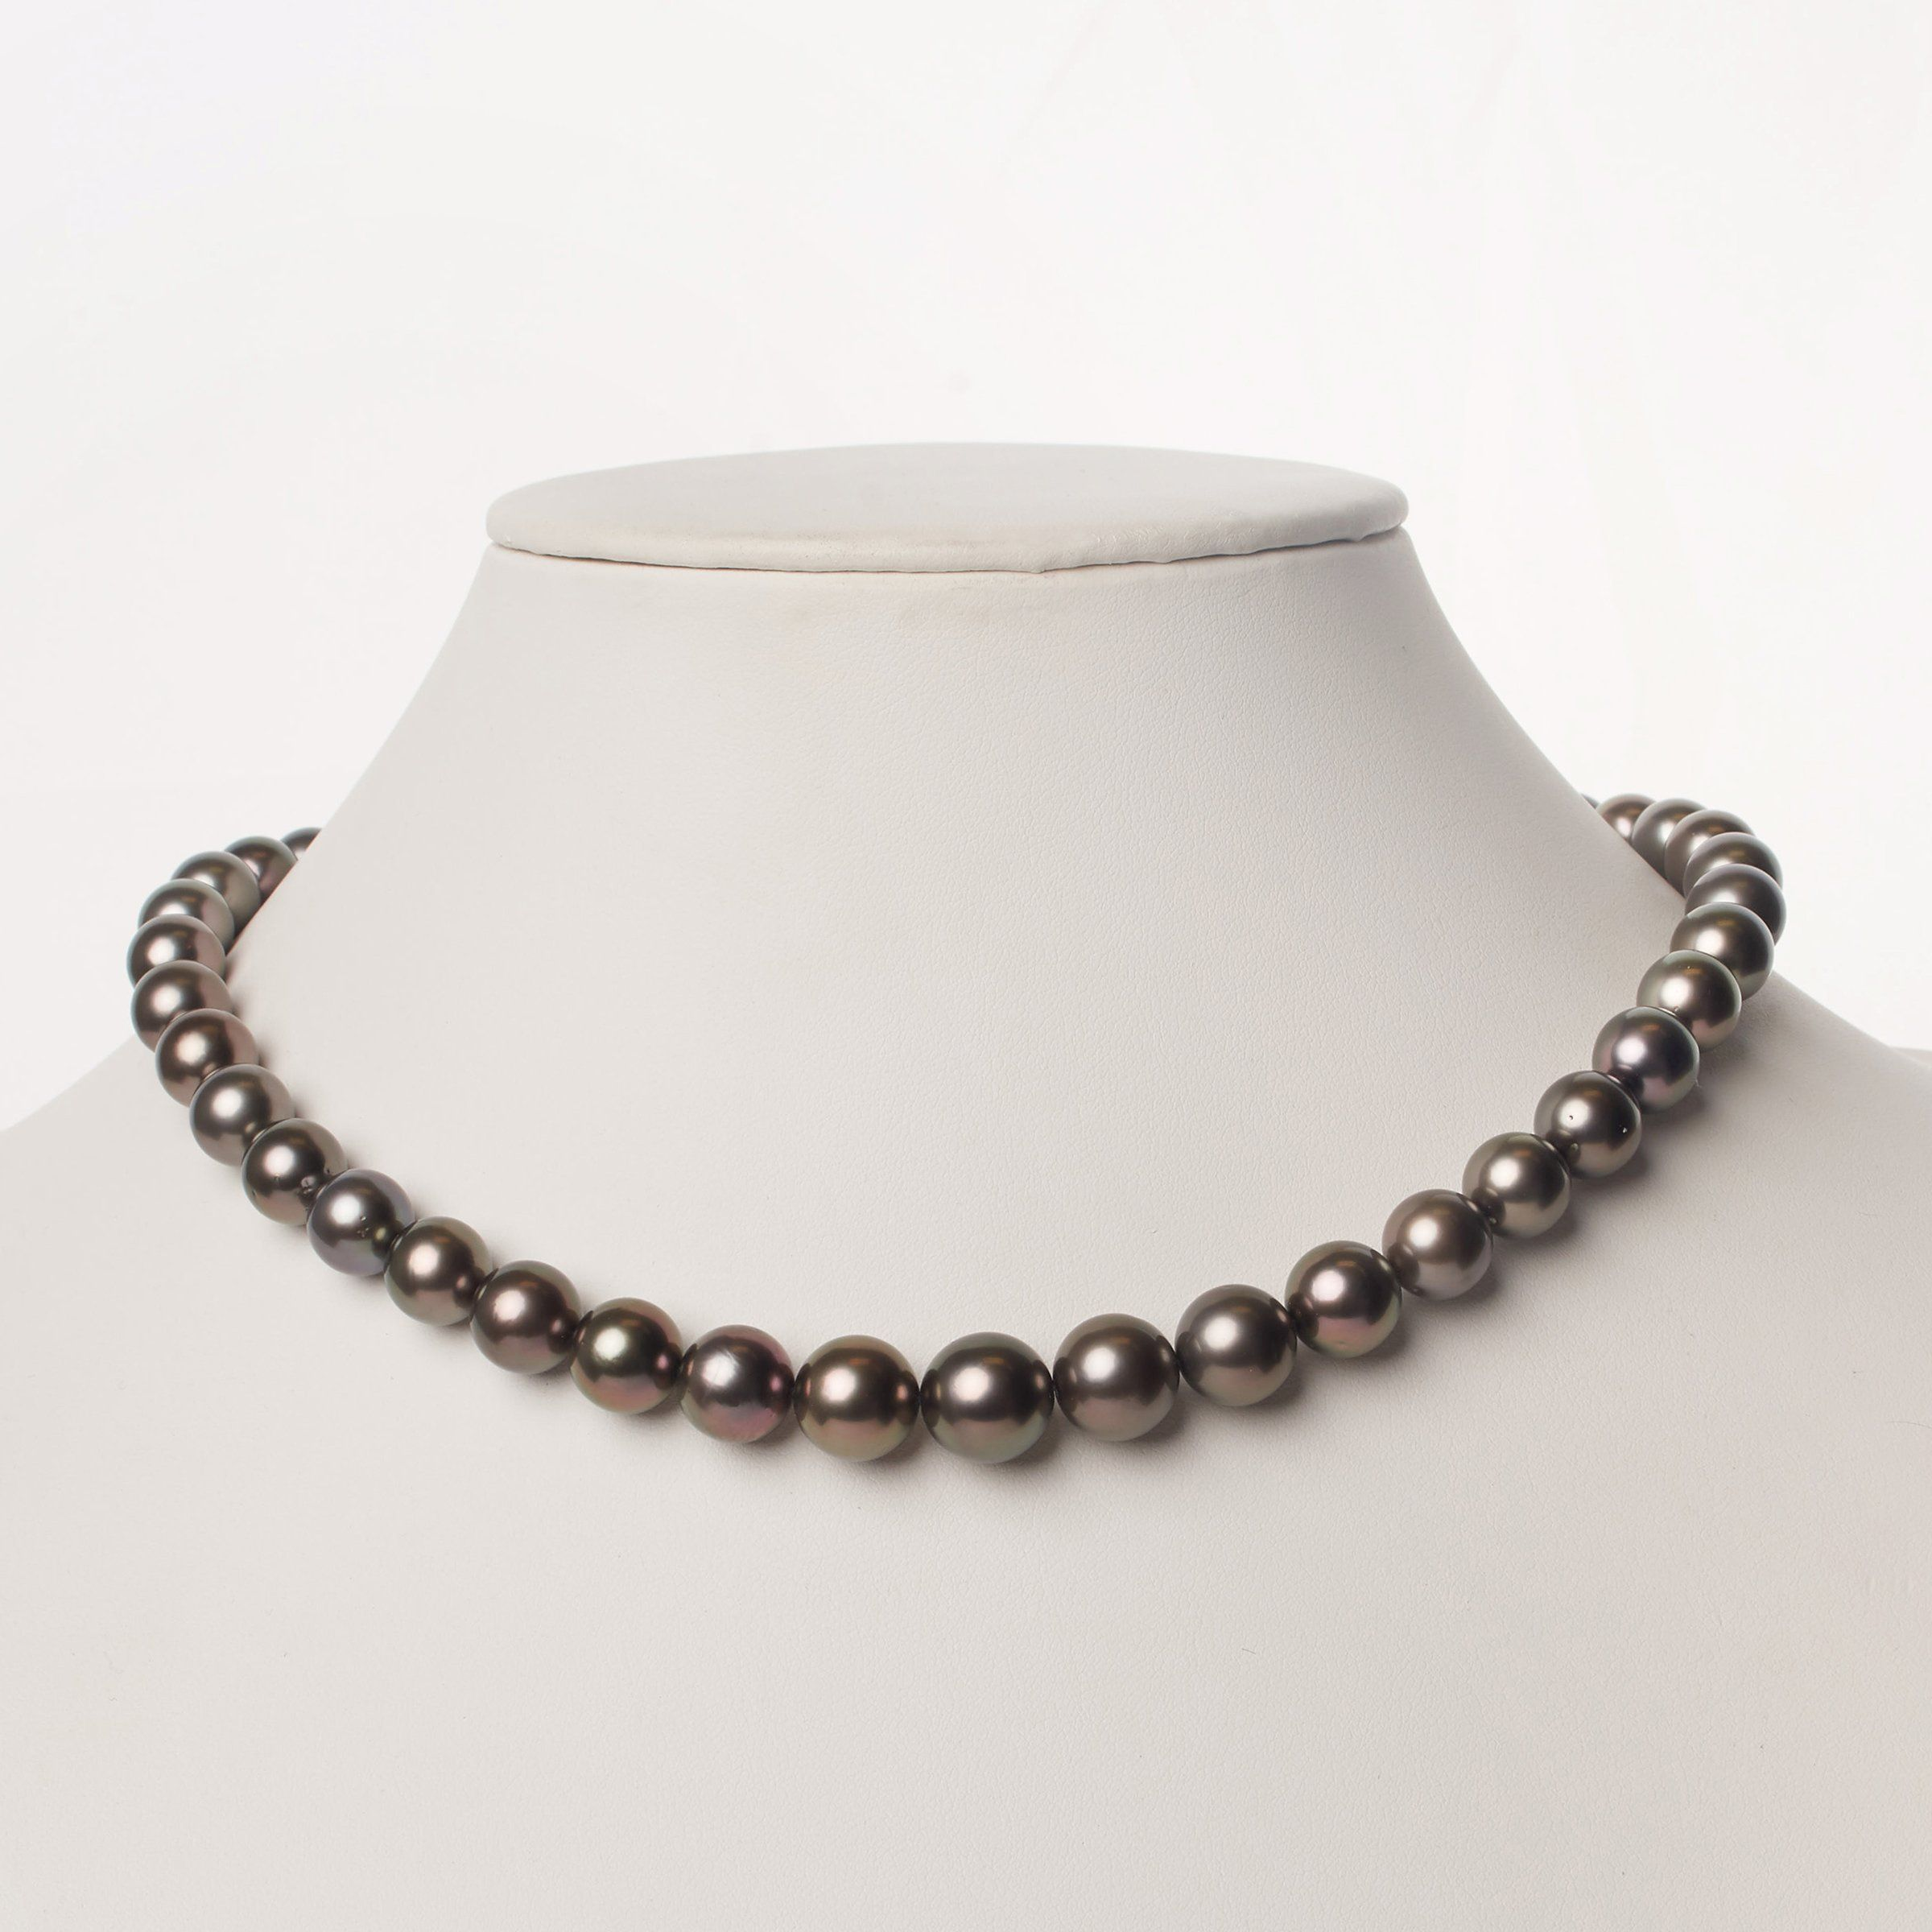 I Wanna Be Your Lover Tahitian Pearl Necklace